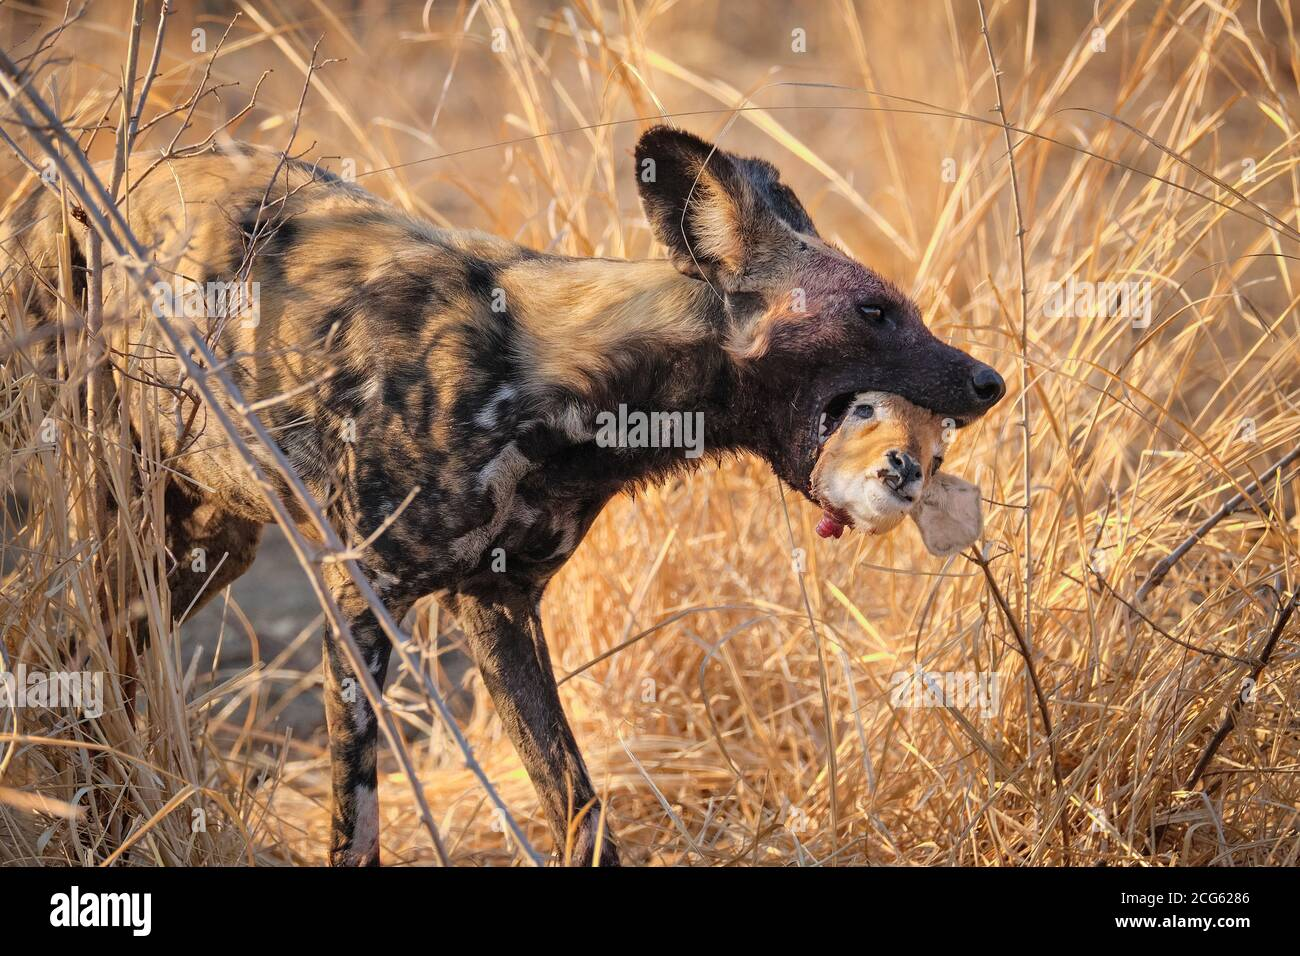 African Wild dog, Lycaon pictus, has an Impala head in its mouth. An endangered species in South Luangwa National Park, Zambia, Africa. Stock Photo